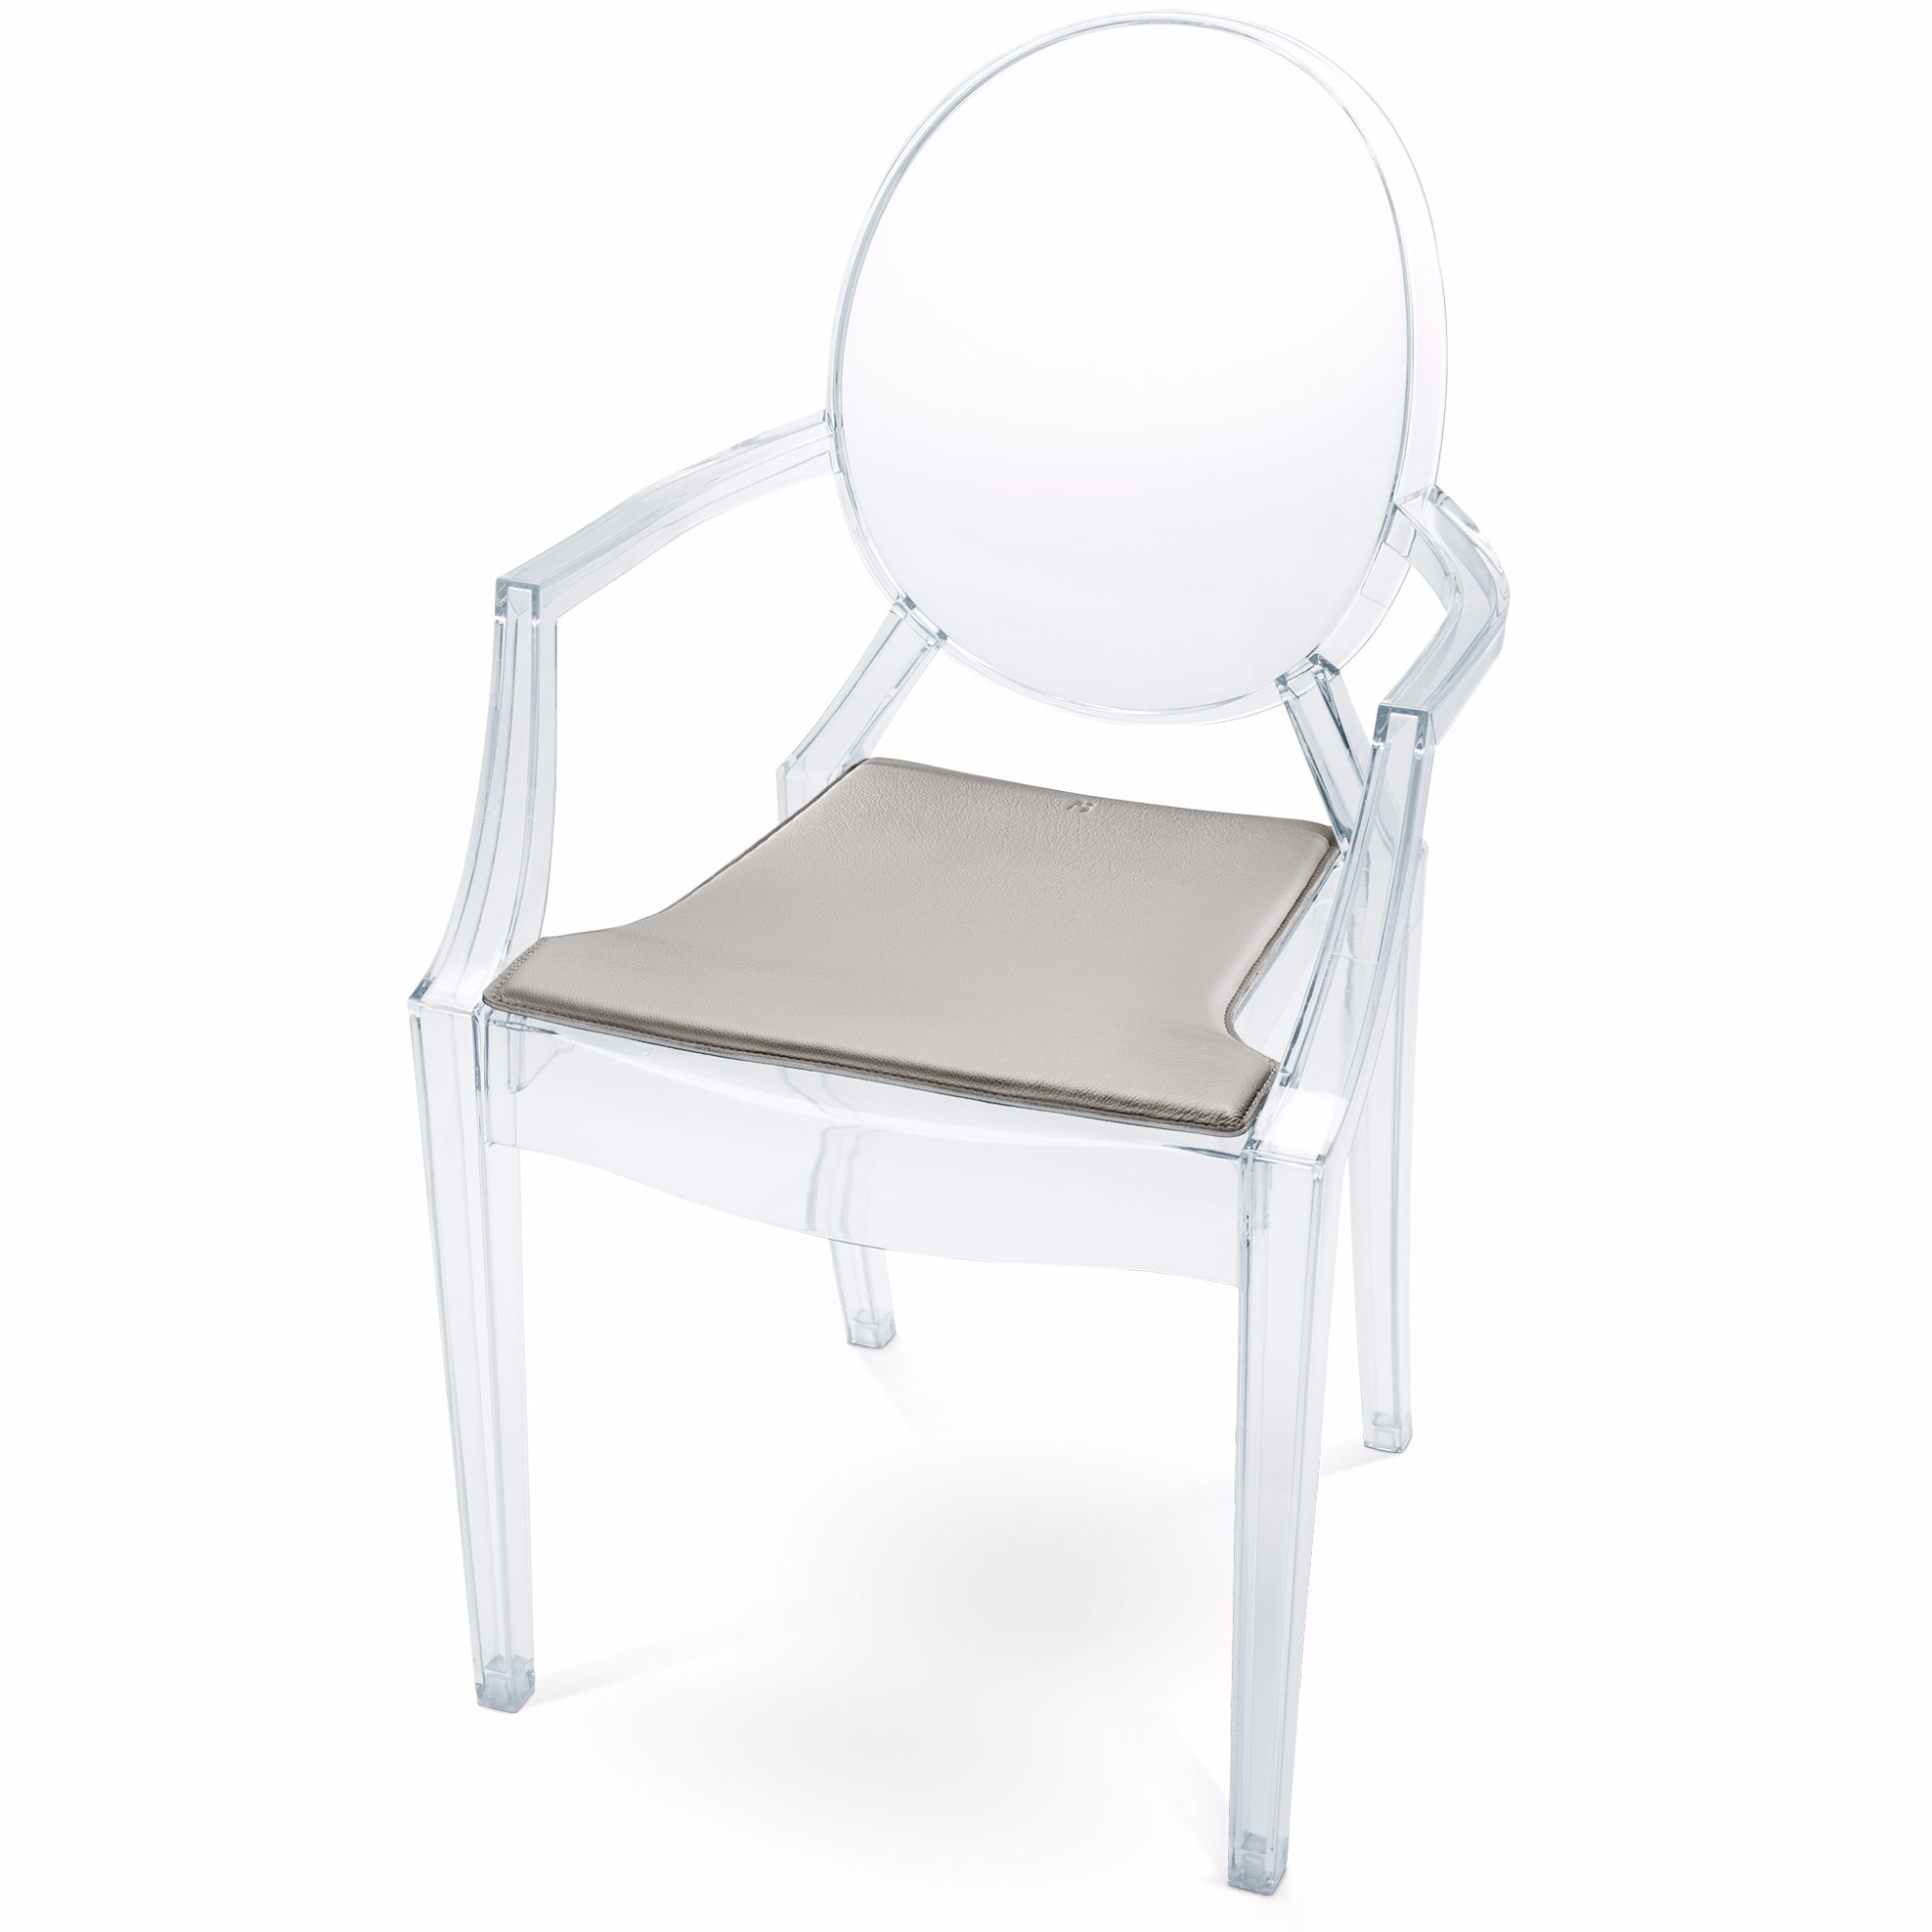 cushions for ghost chairs chair covers outdoor leather seat cushion louis by hillmann living